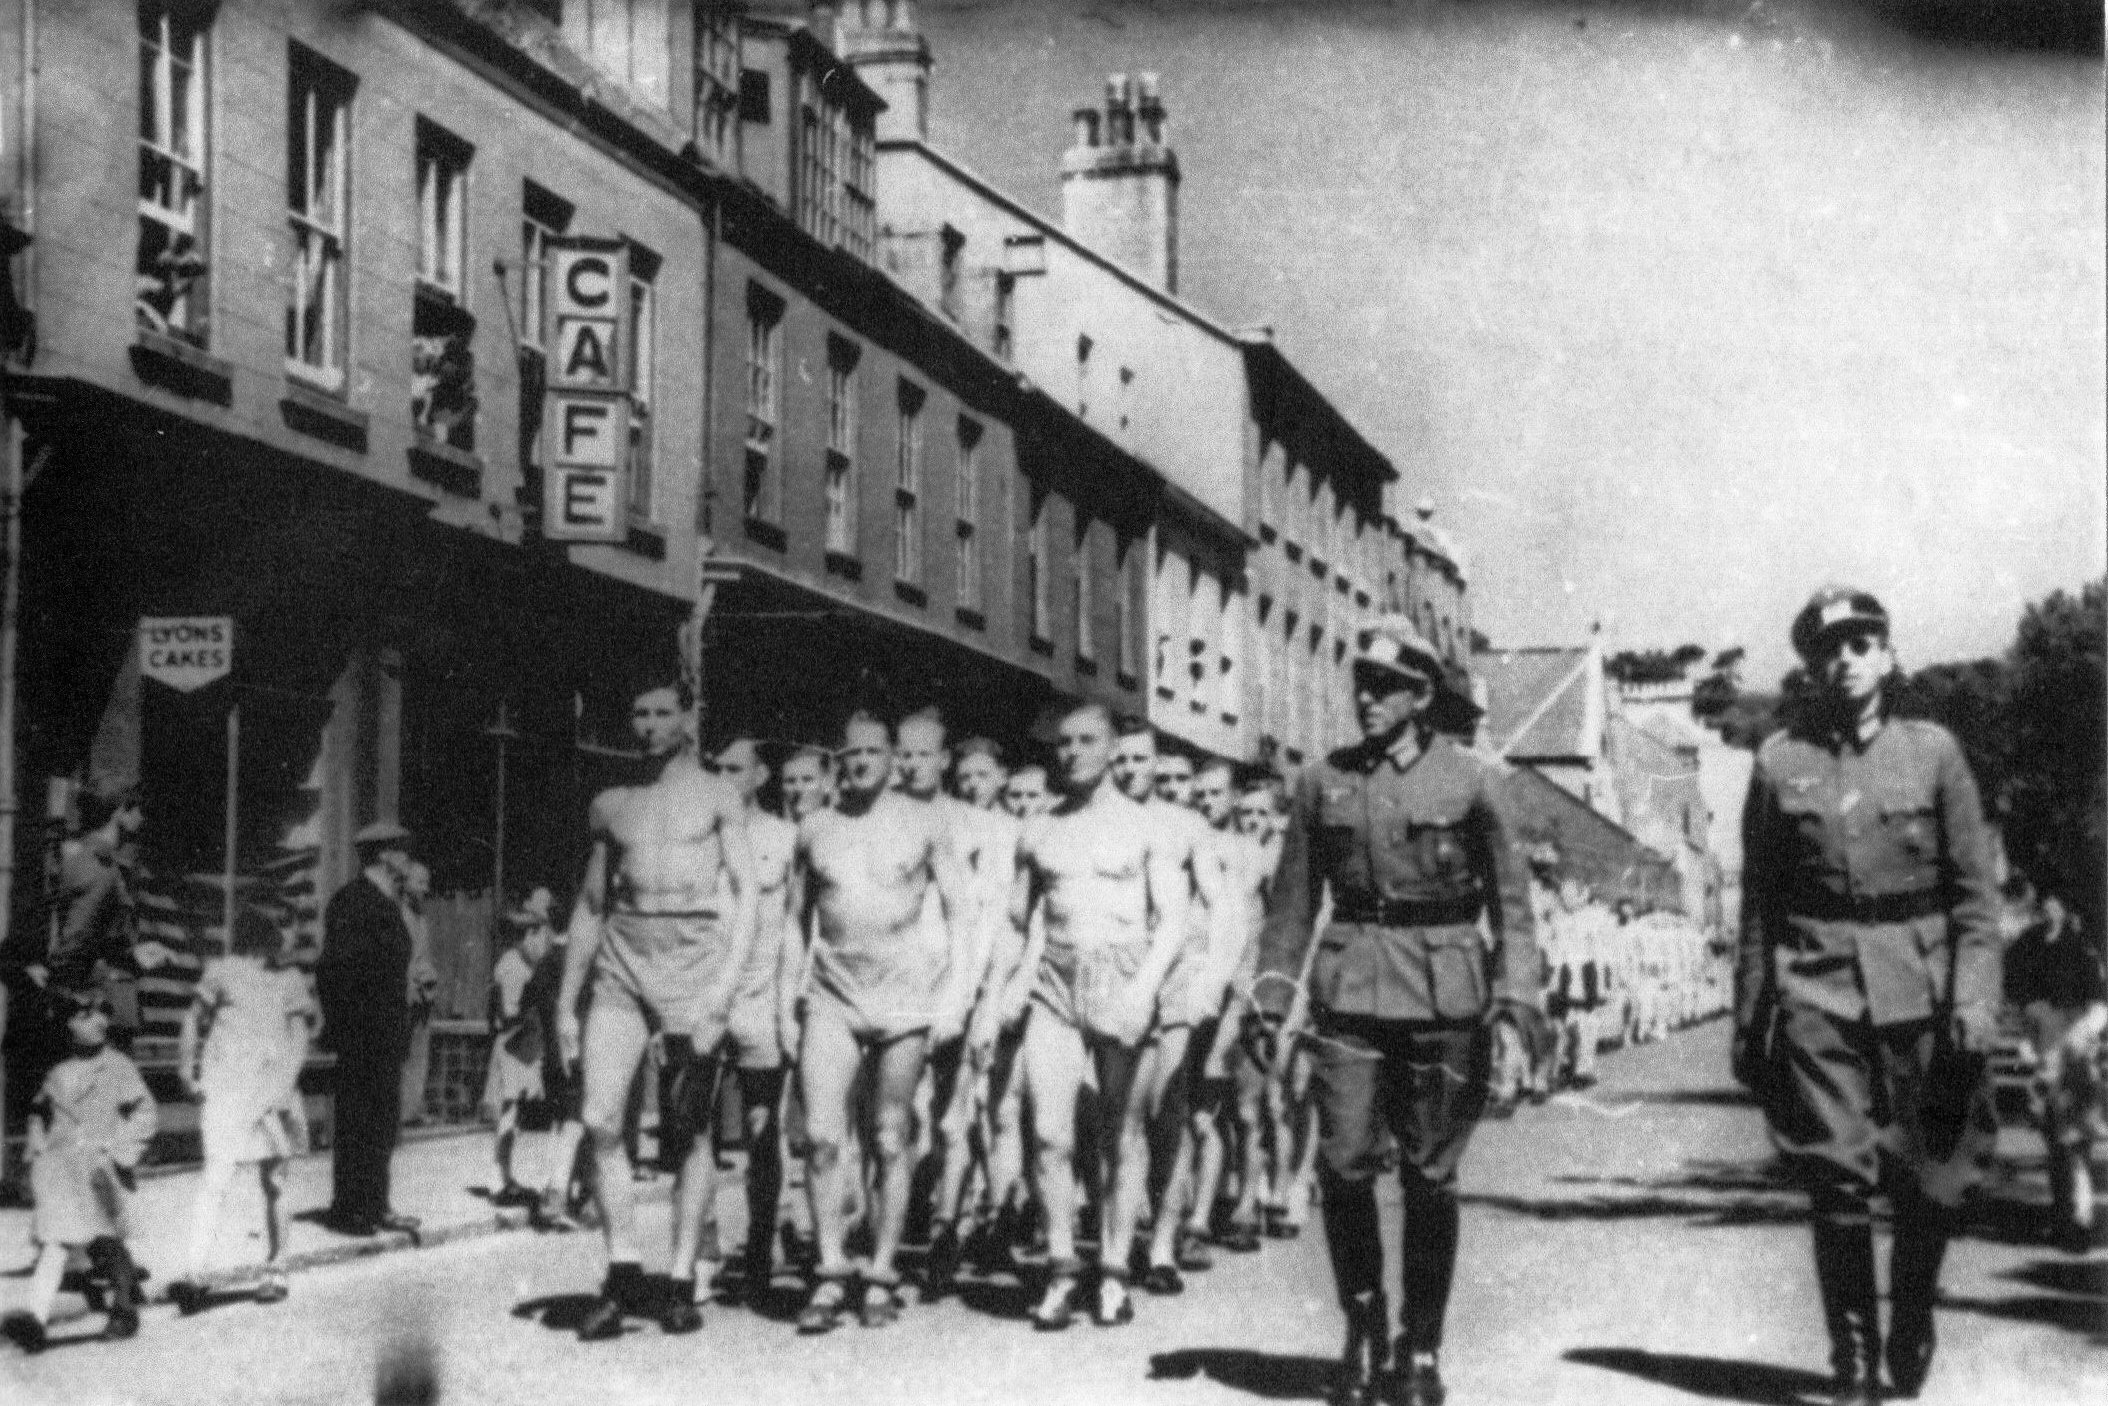 Germans marching to fitness training